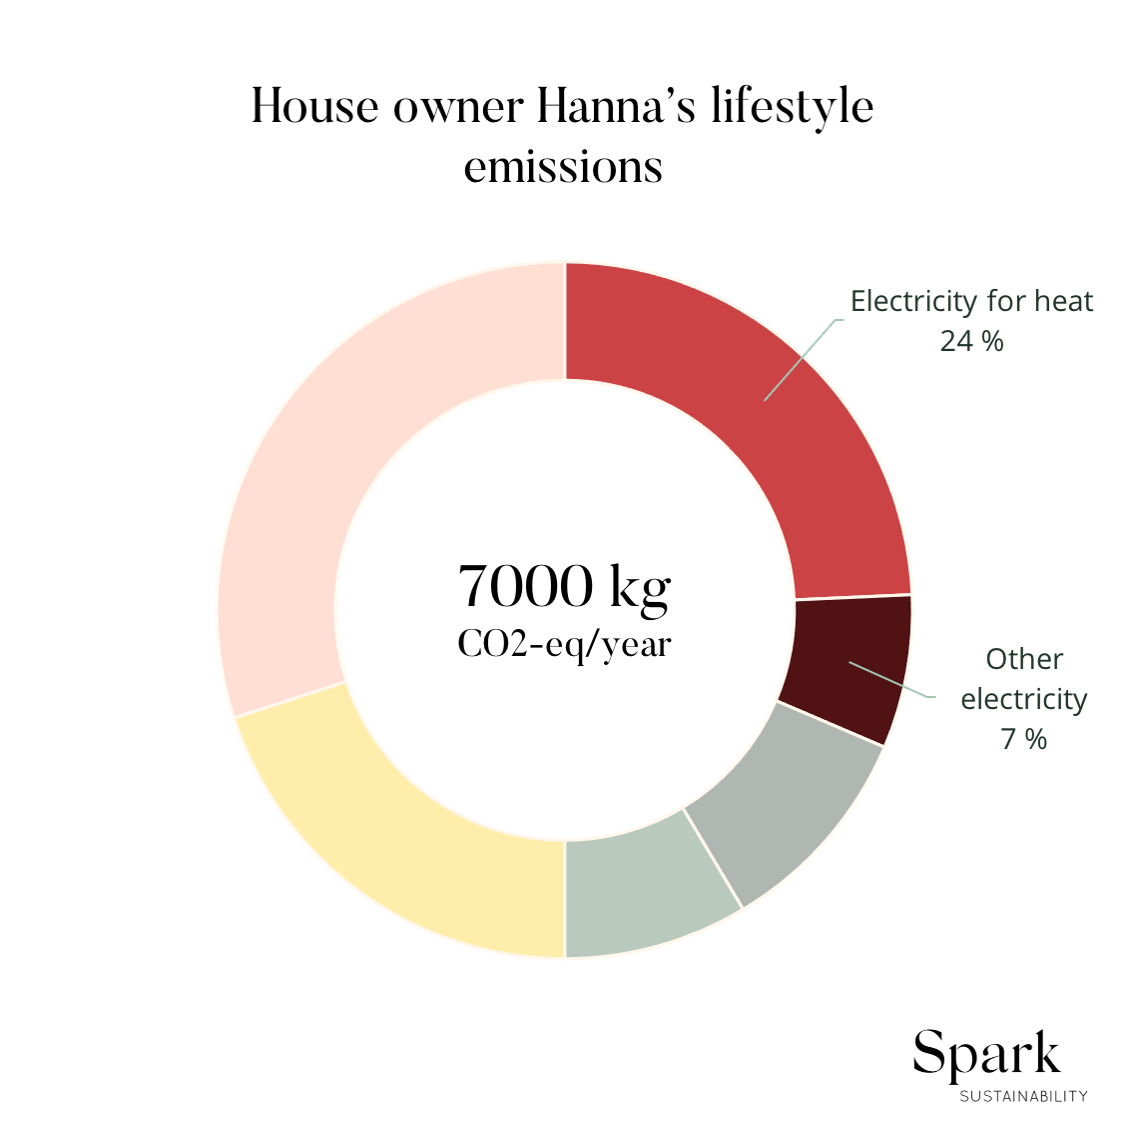 House owner Hanna's lifestyle emissions.